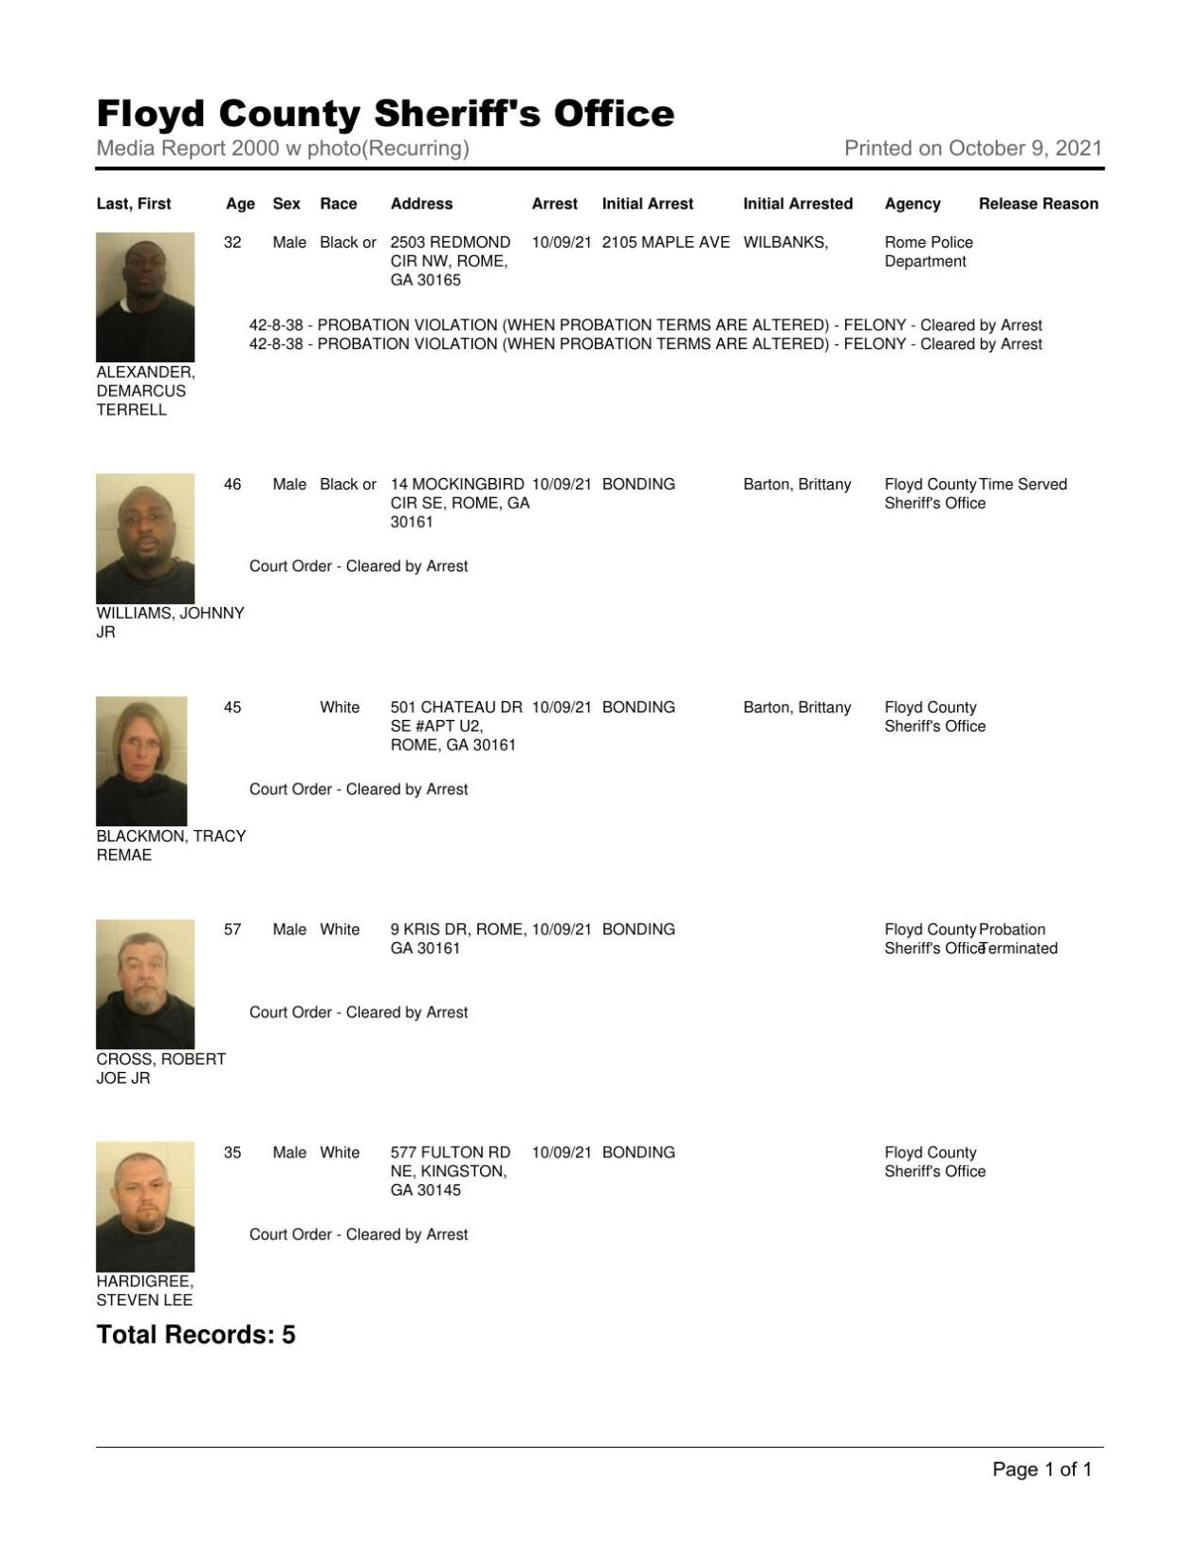 Floyd County Jail report for 8 pm Saturday, Oct. 9